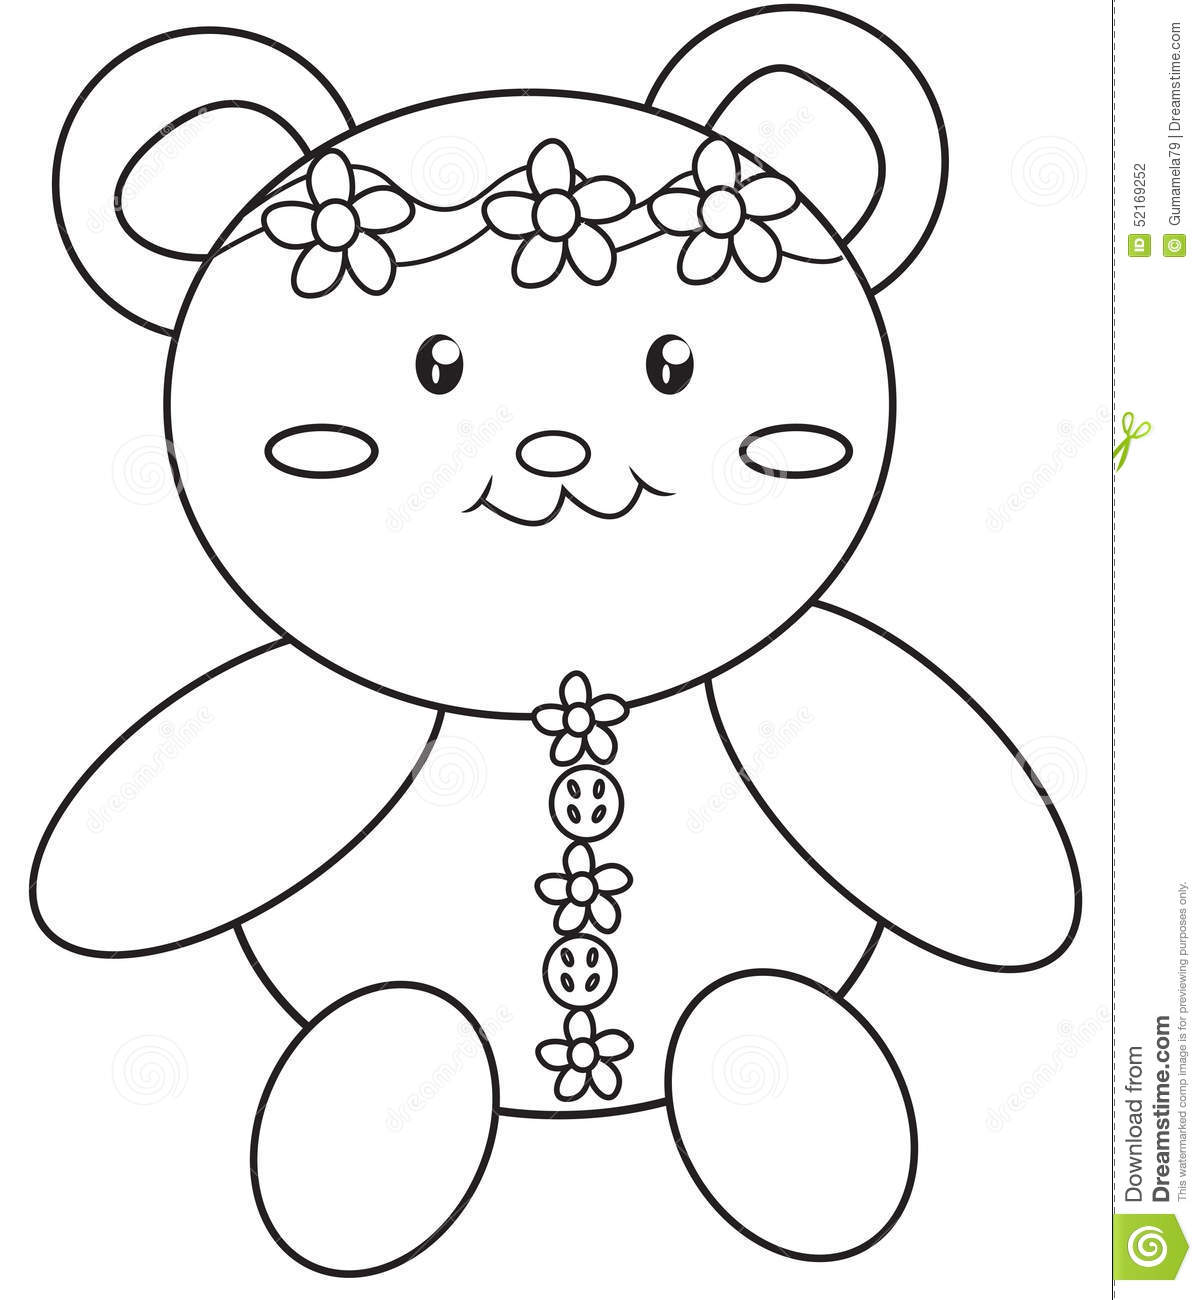 teddy bear coloring page stock illustration image 52169252